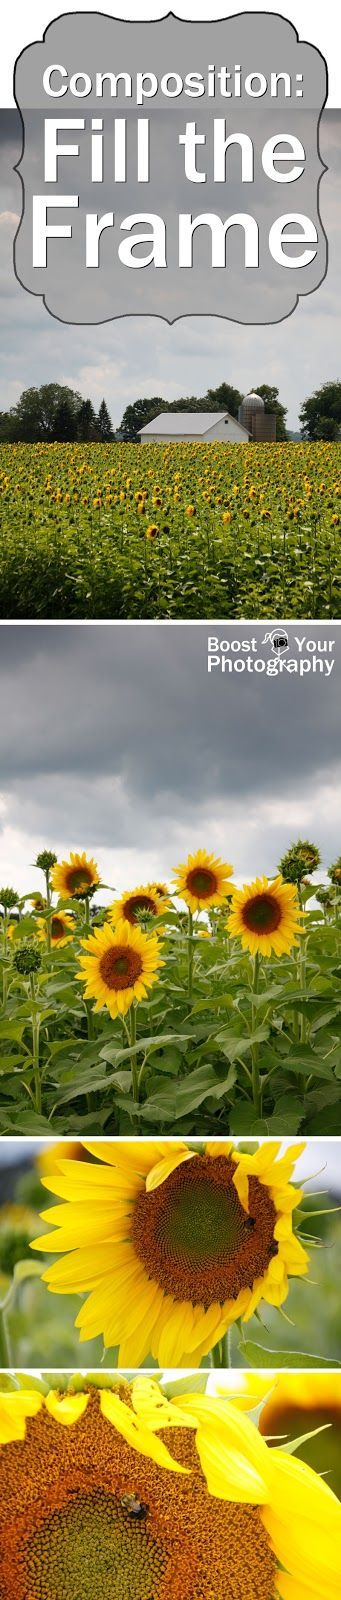 Composition: Fill the Frame - sunflowers example | Boost Your Photography